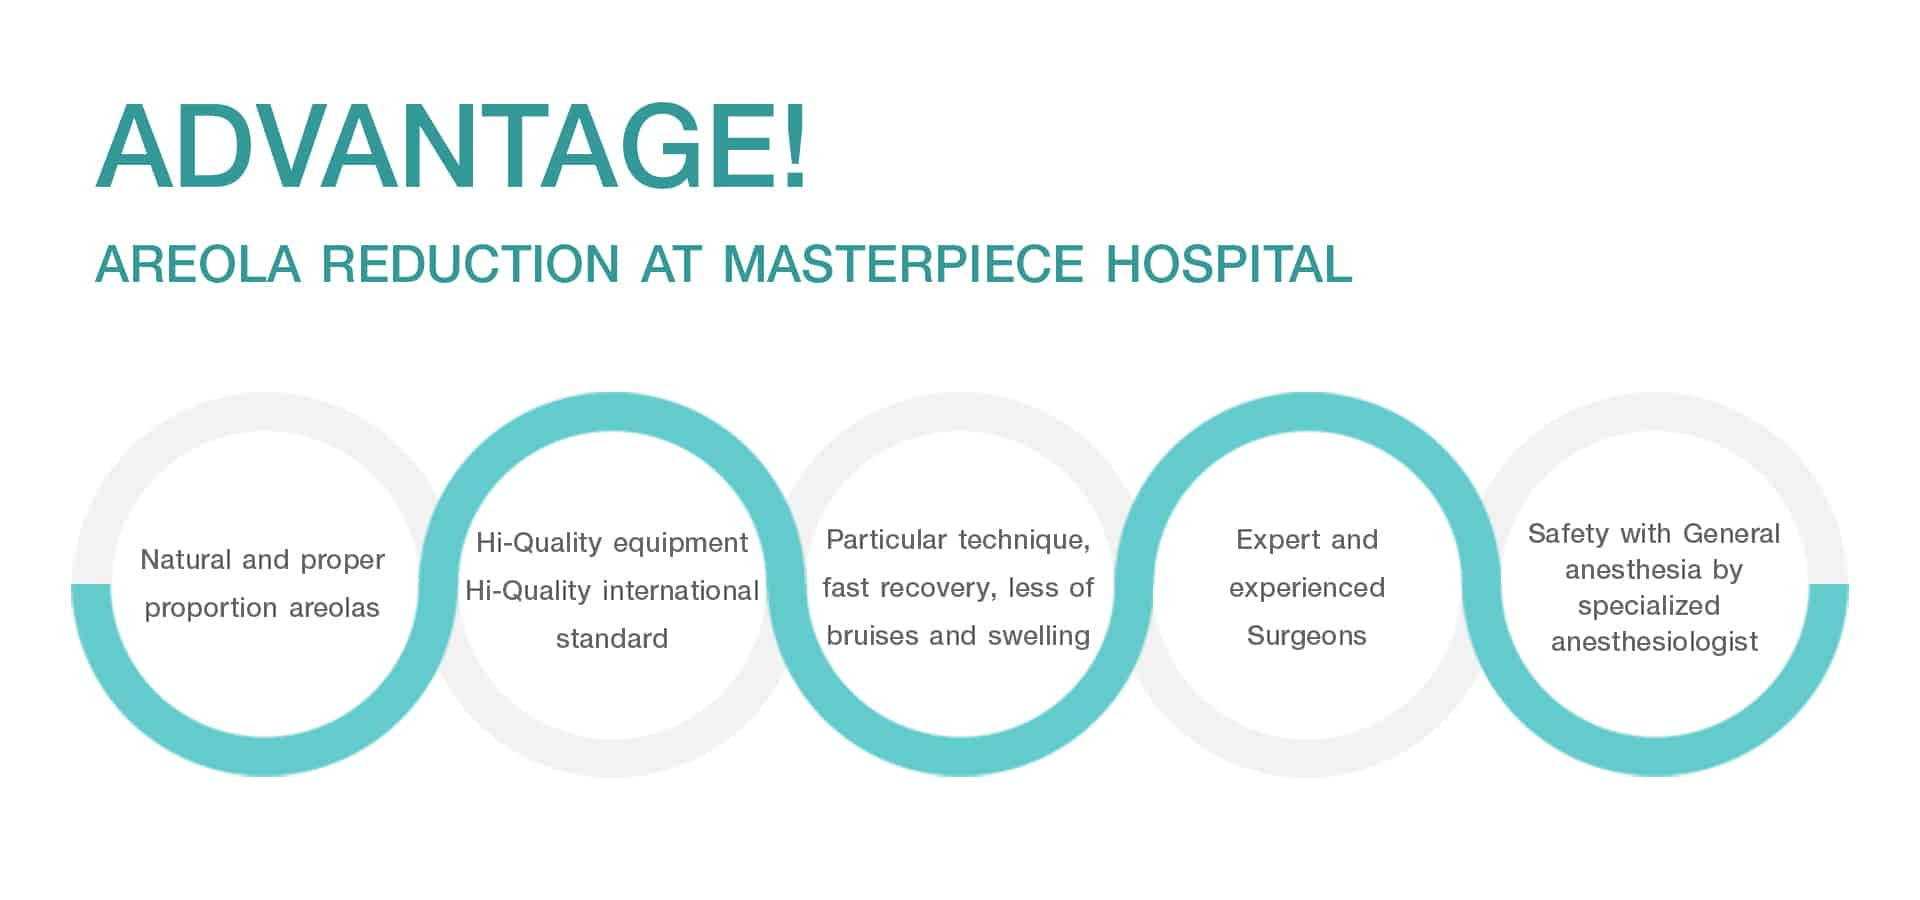 Advantage Areola Reduction at Masterpiece Hospital